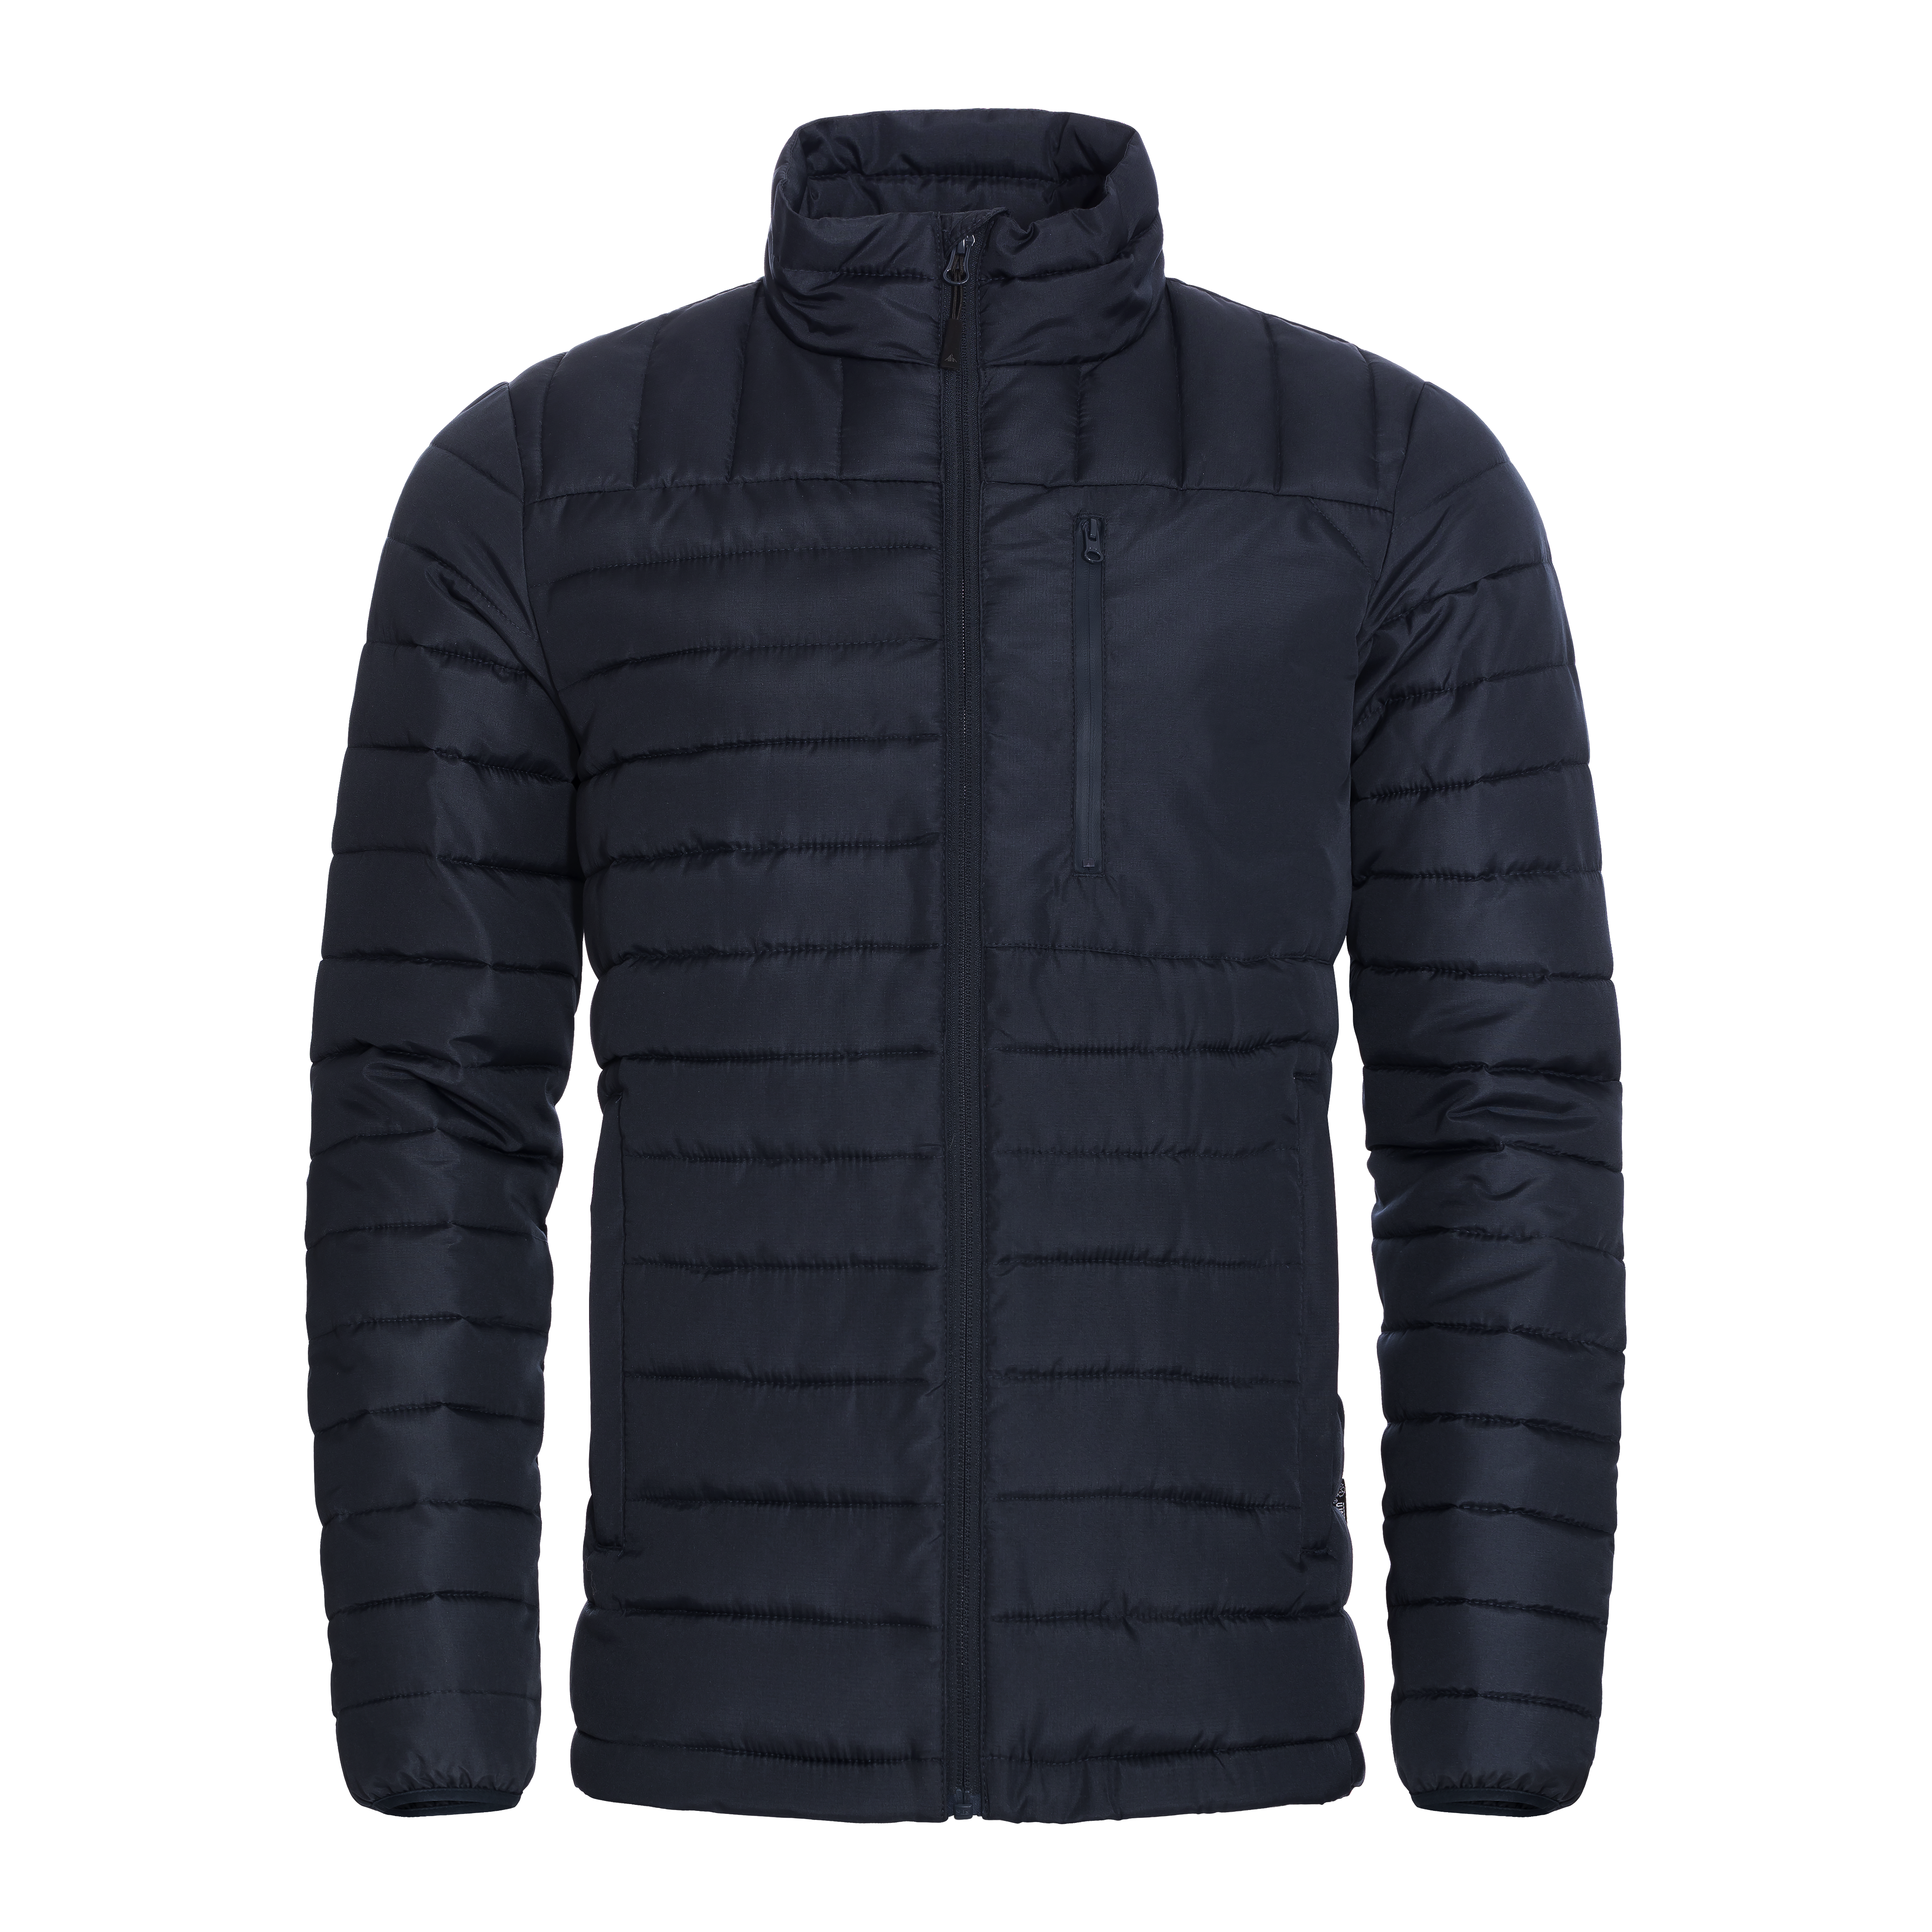 MH-226 Recycle Quilted Jacket